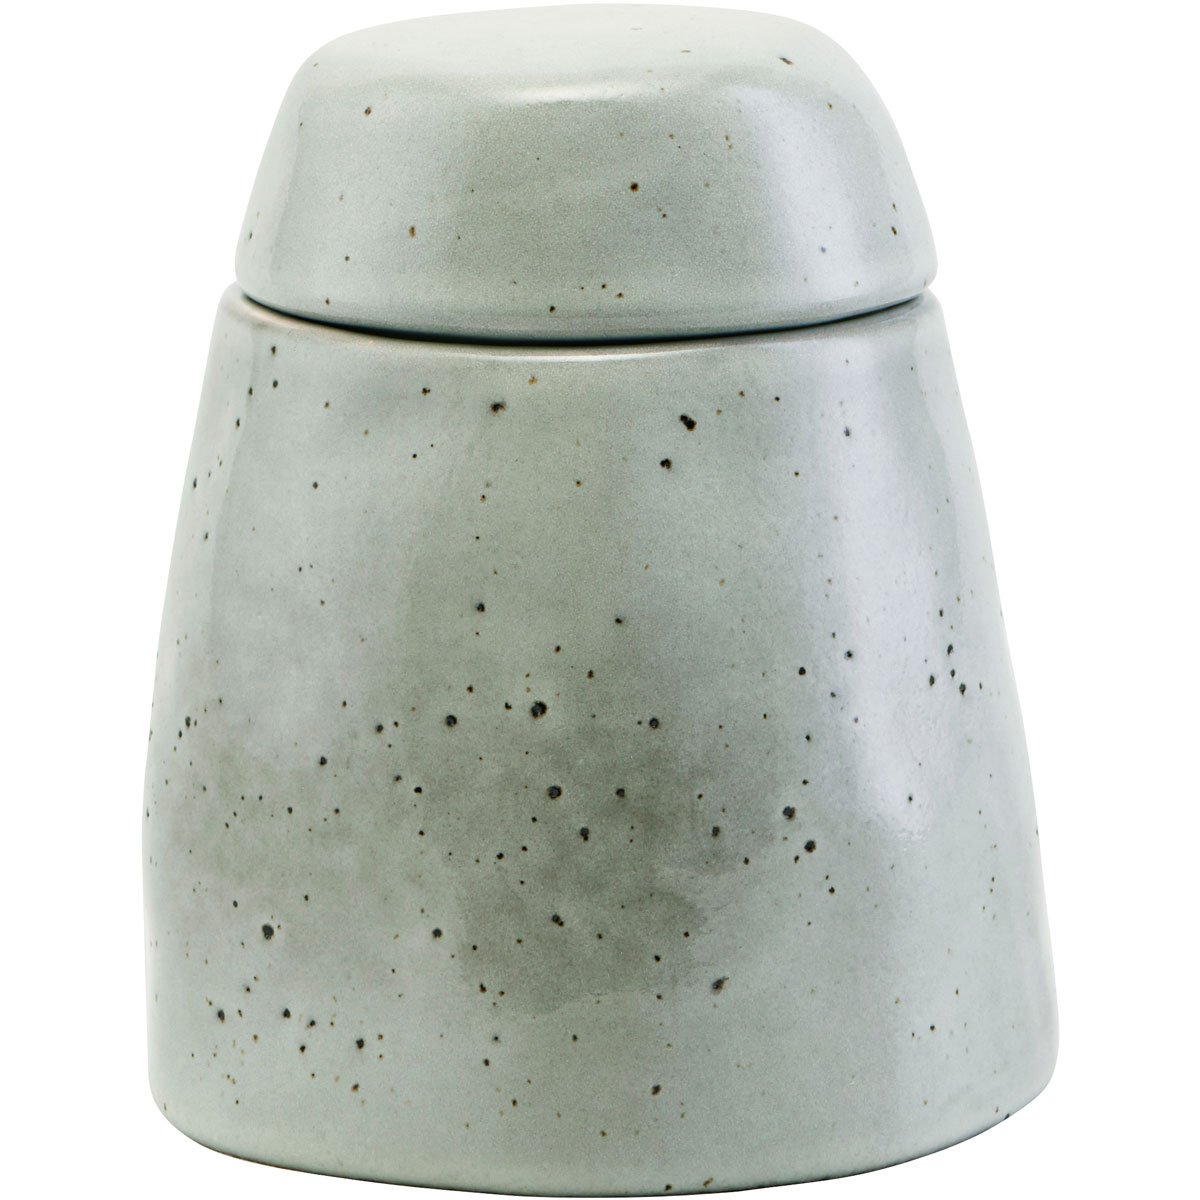 House Doctor Rustic Rustic Sugar Bowl With Lid Grey Blue